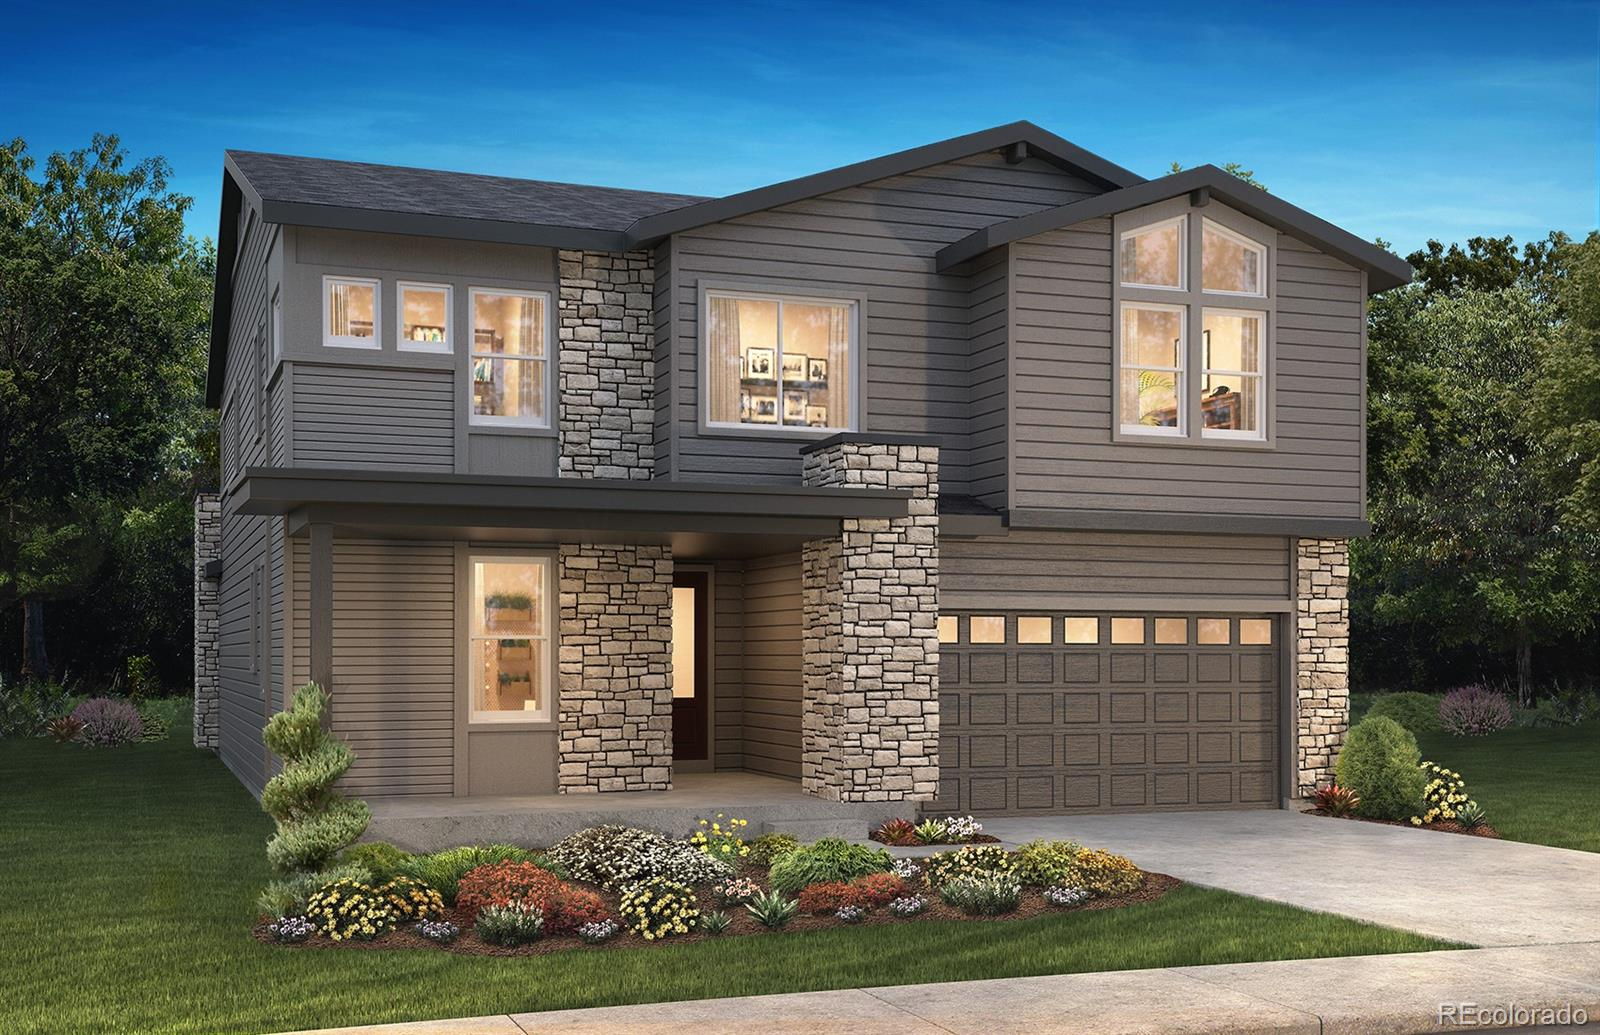 """Available April 2020. This gorgeous Zolla 2-Story in The Canyons features 5 beds (4 upper / 1 main), 4.5 baths, great room, dining room, gourmet kitchen, loft, unfinished basement for future expansion and a 3 car garage (2 + 1 tandem). Upgrades and design features of this home include: 36"""" GE Profile™ stainless steel gas appliances, Shaw Lazio Plus Sabbia wood-style laminate flooring, Aristokraft® Winstead Maple Burlap cabinetry, MSI Frost White quartz slab kitchen counters w/full tile backsplash, MSI Frost White quartz slab master bath counters, Fireplace with half height 12x24 horizontal stagger tile and mantel at great room, Barn doors at study and master bath, outdoor covered patio and more. This stunning home thoughtfully combines elegance and luxury.  Don't miss your opportunity.  Welcome Home!"""